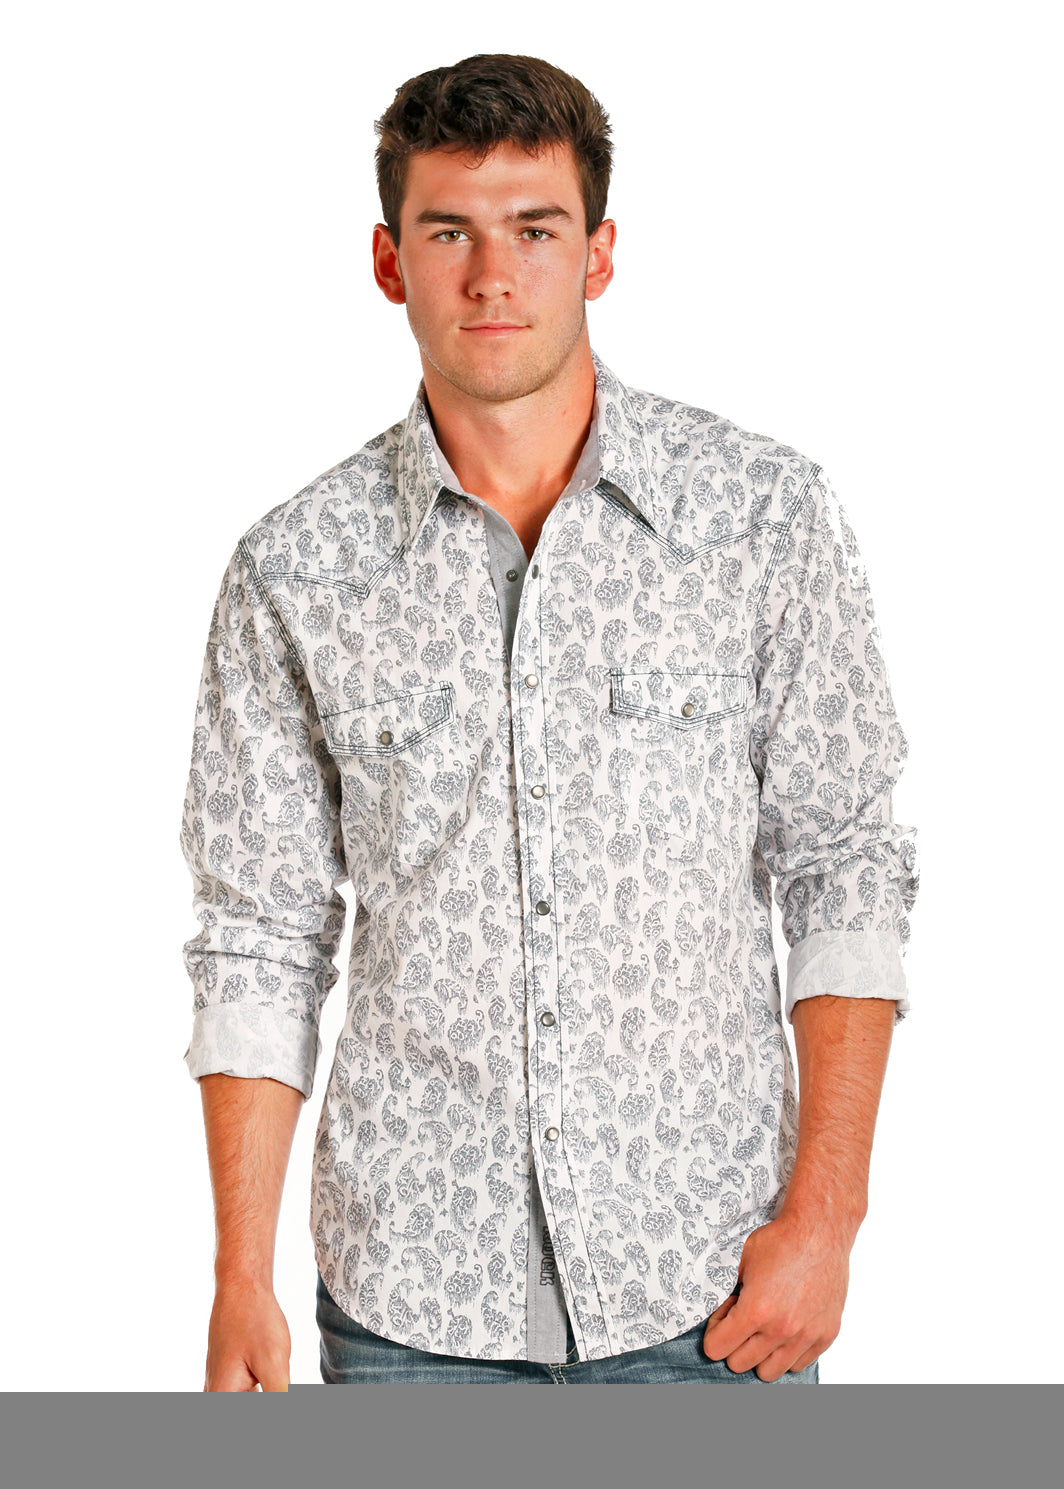 Rock Roll Cowboy Mens White Grey Vintage Paisley Snap Up